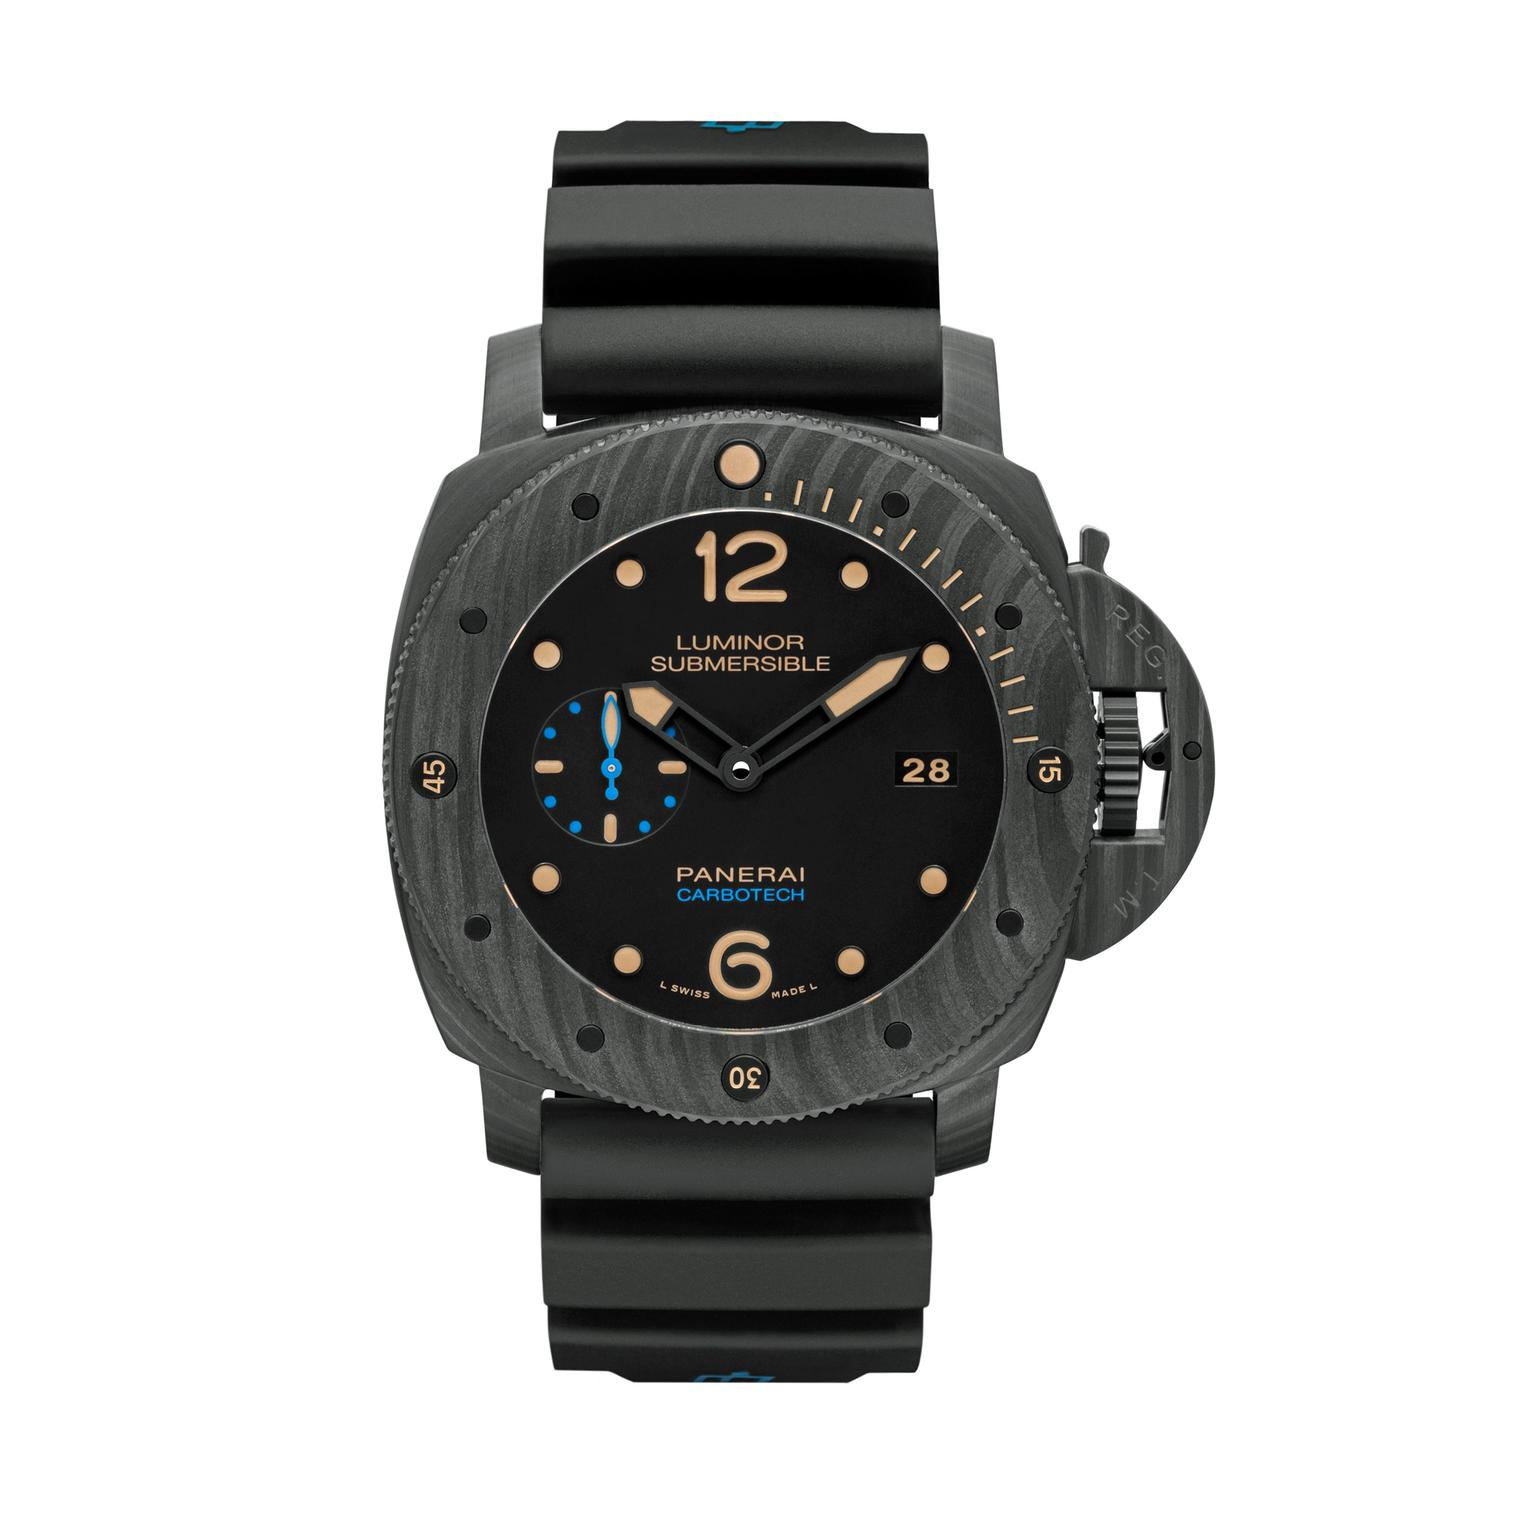 Panerai Luminor Submersible 1950 Carbotech watch